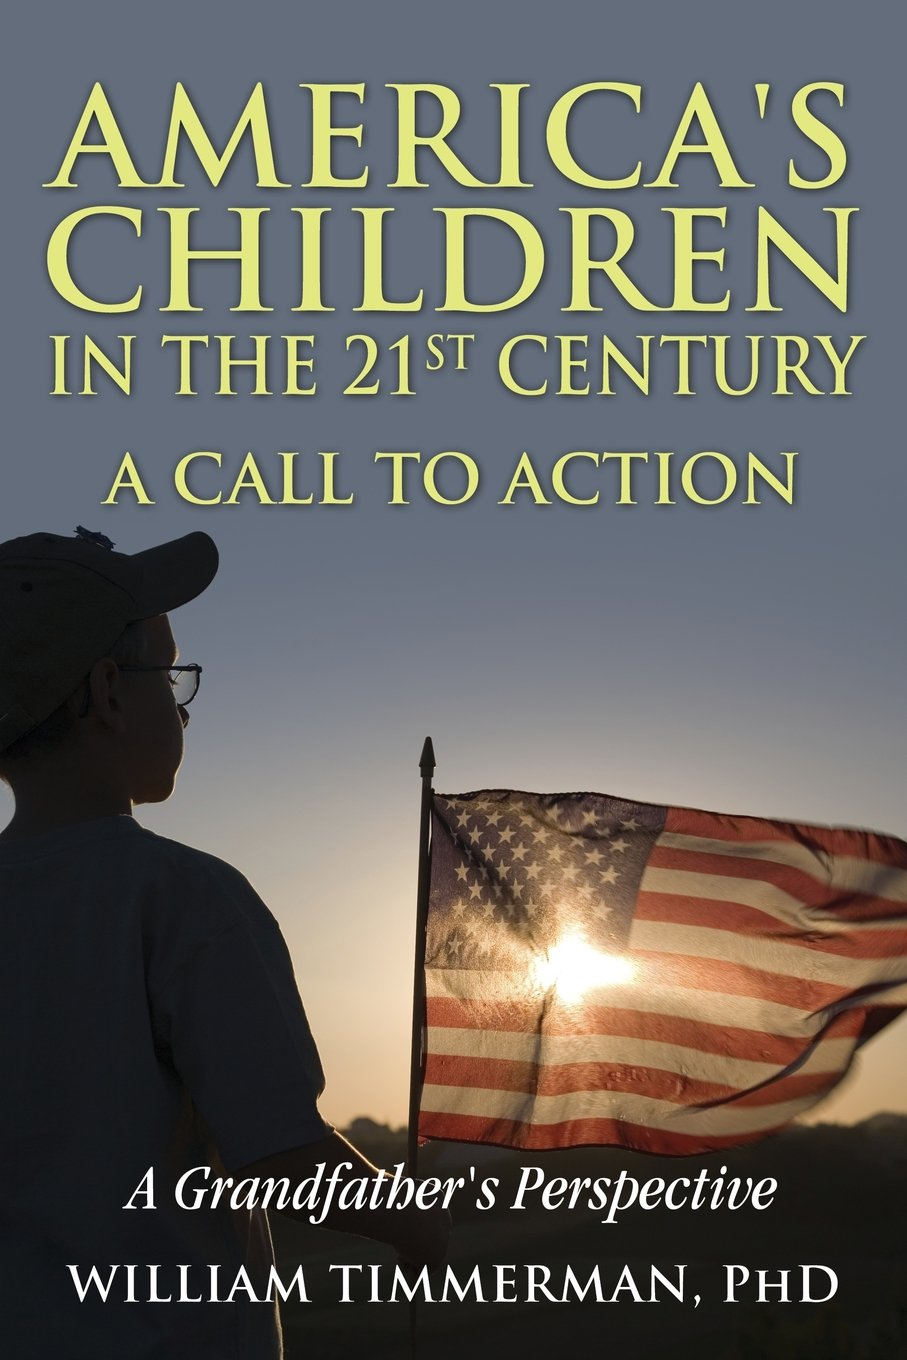 Download America's Children in the 21st Century-A Call to Action: A Grandfather's Perspective pdf